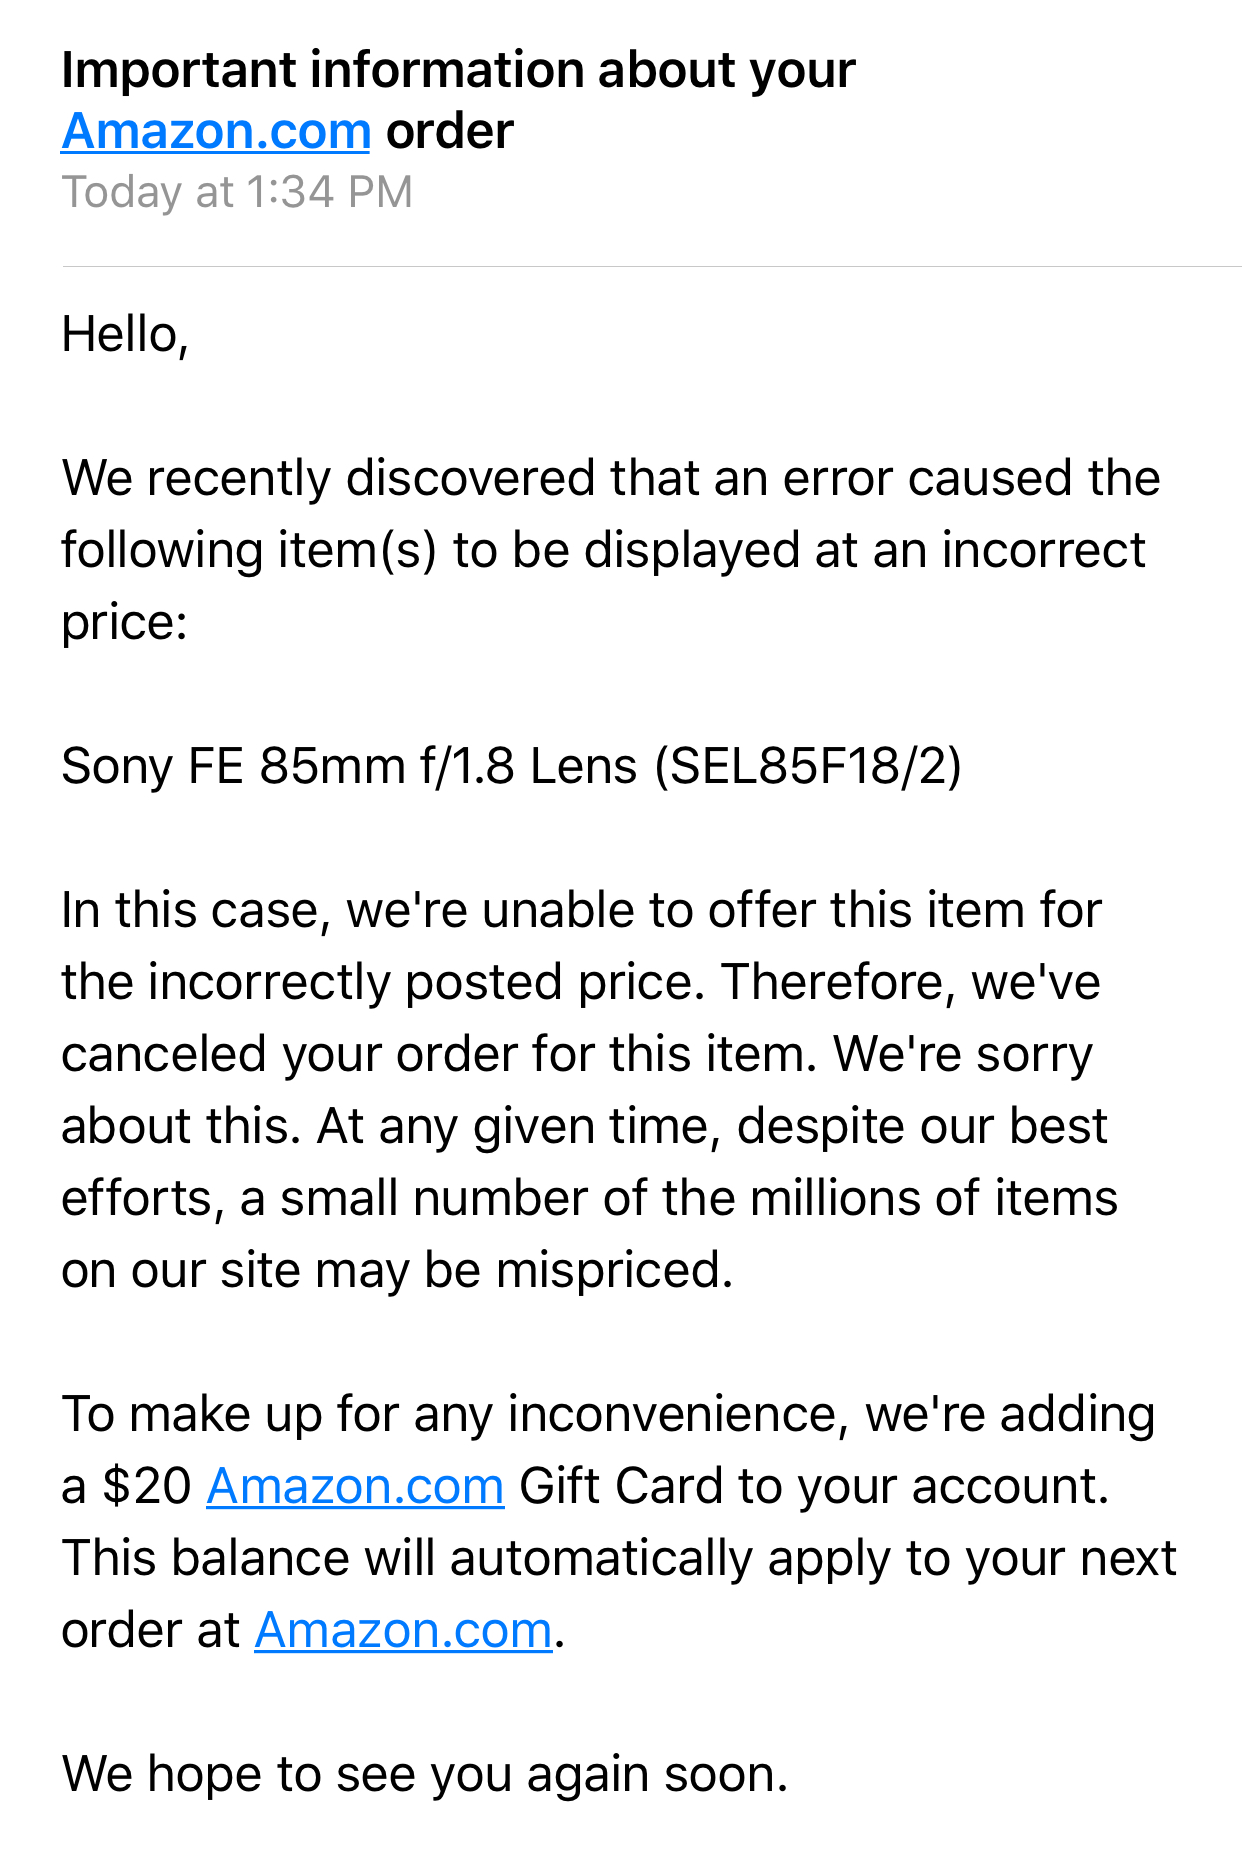 Amazon Canceled the Orders for $249 Sony 85mm F1.8 FE Lens